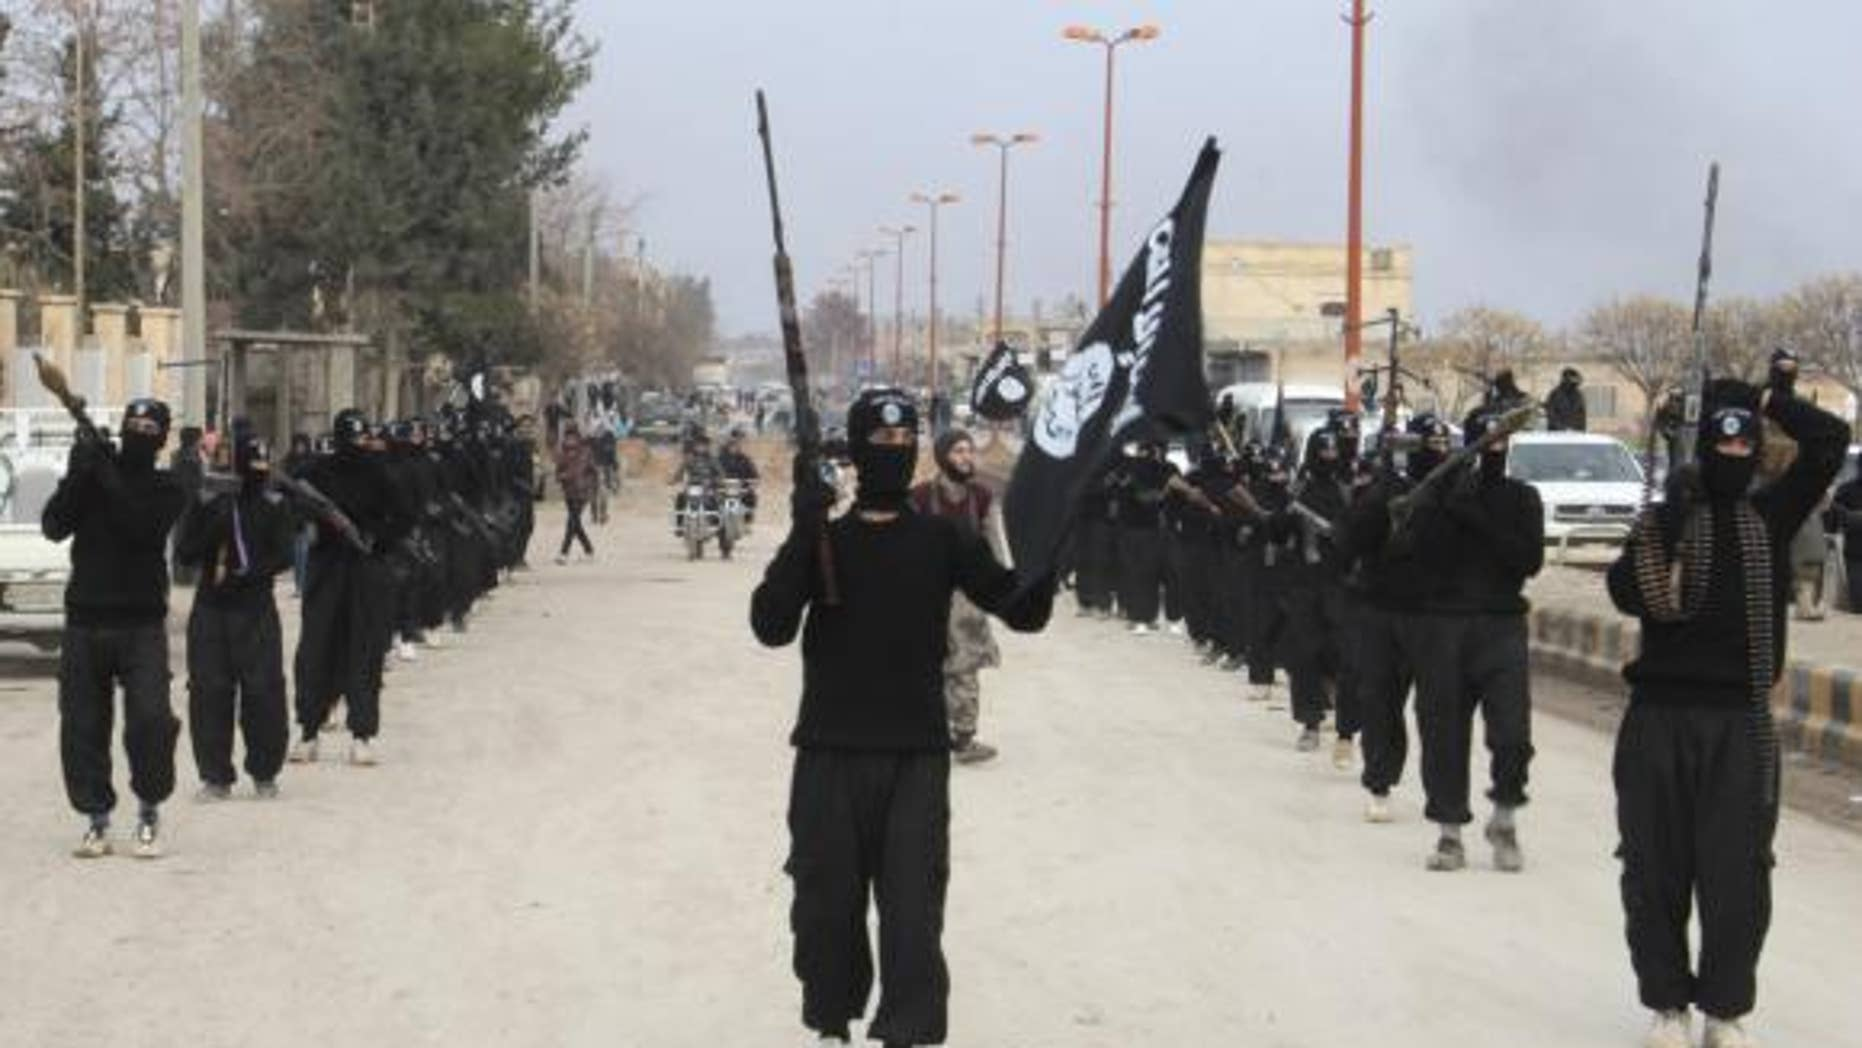 Fighters of the Islamic State recently burned to death five women and their sons, according to reports from Iraq. (Reuters)